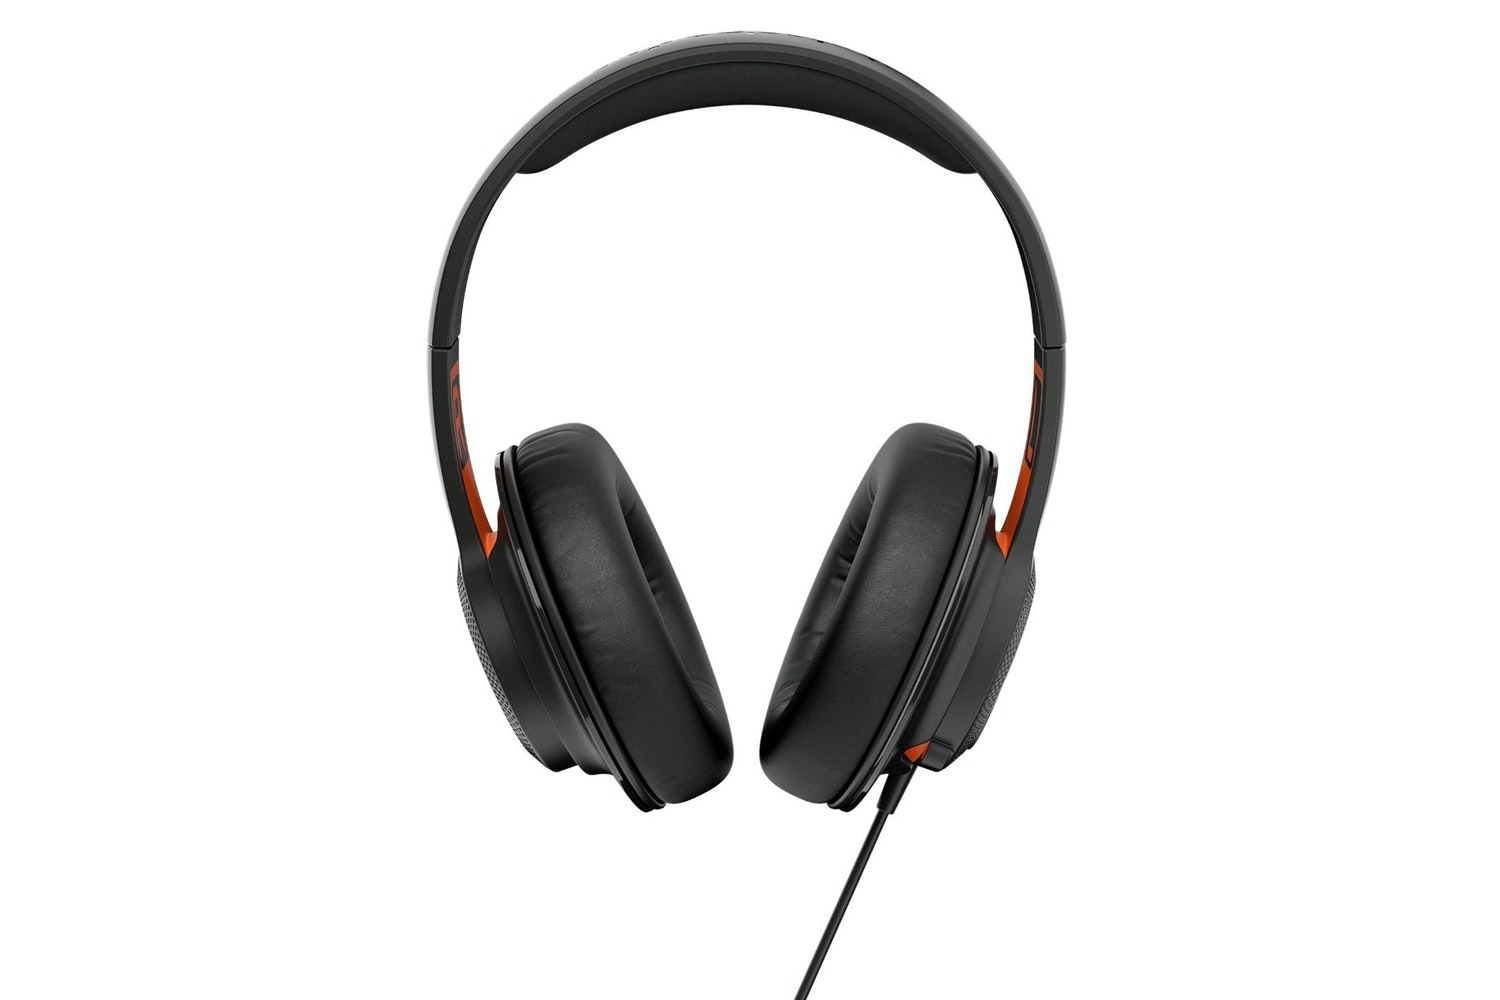 SteelSeries Siberia 150 Gaming Headset